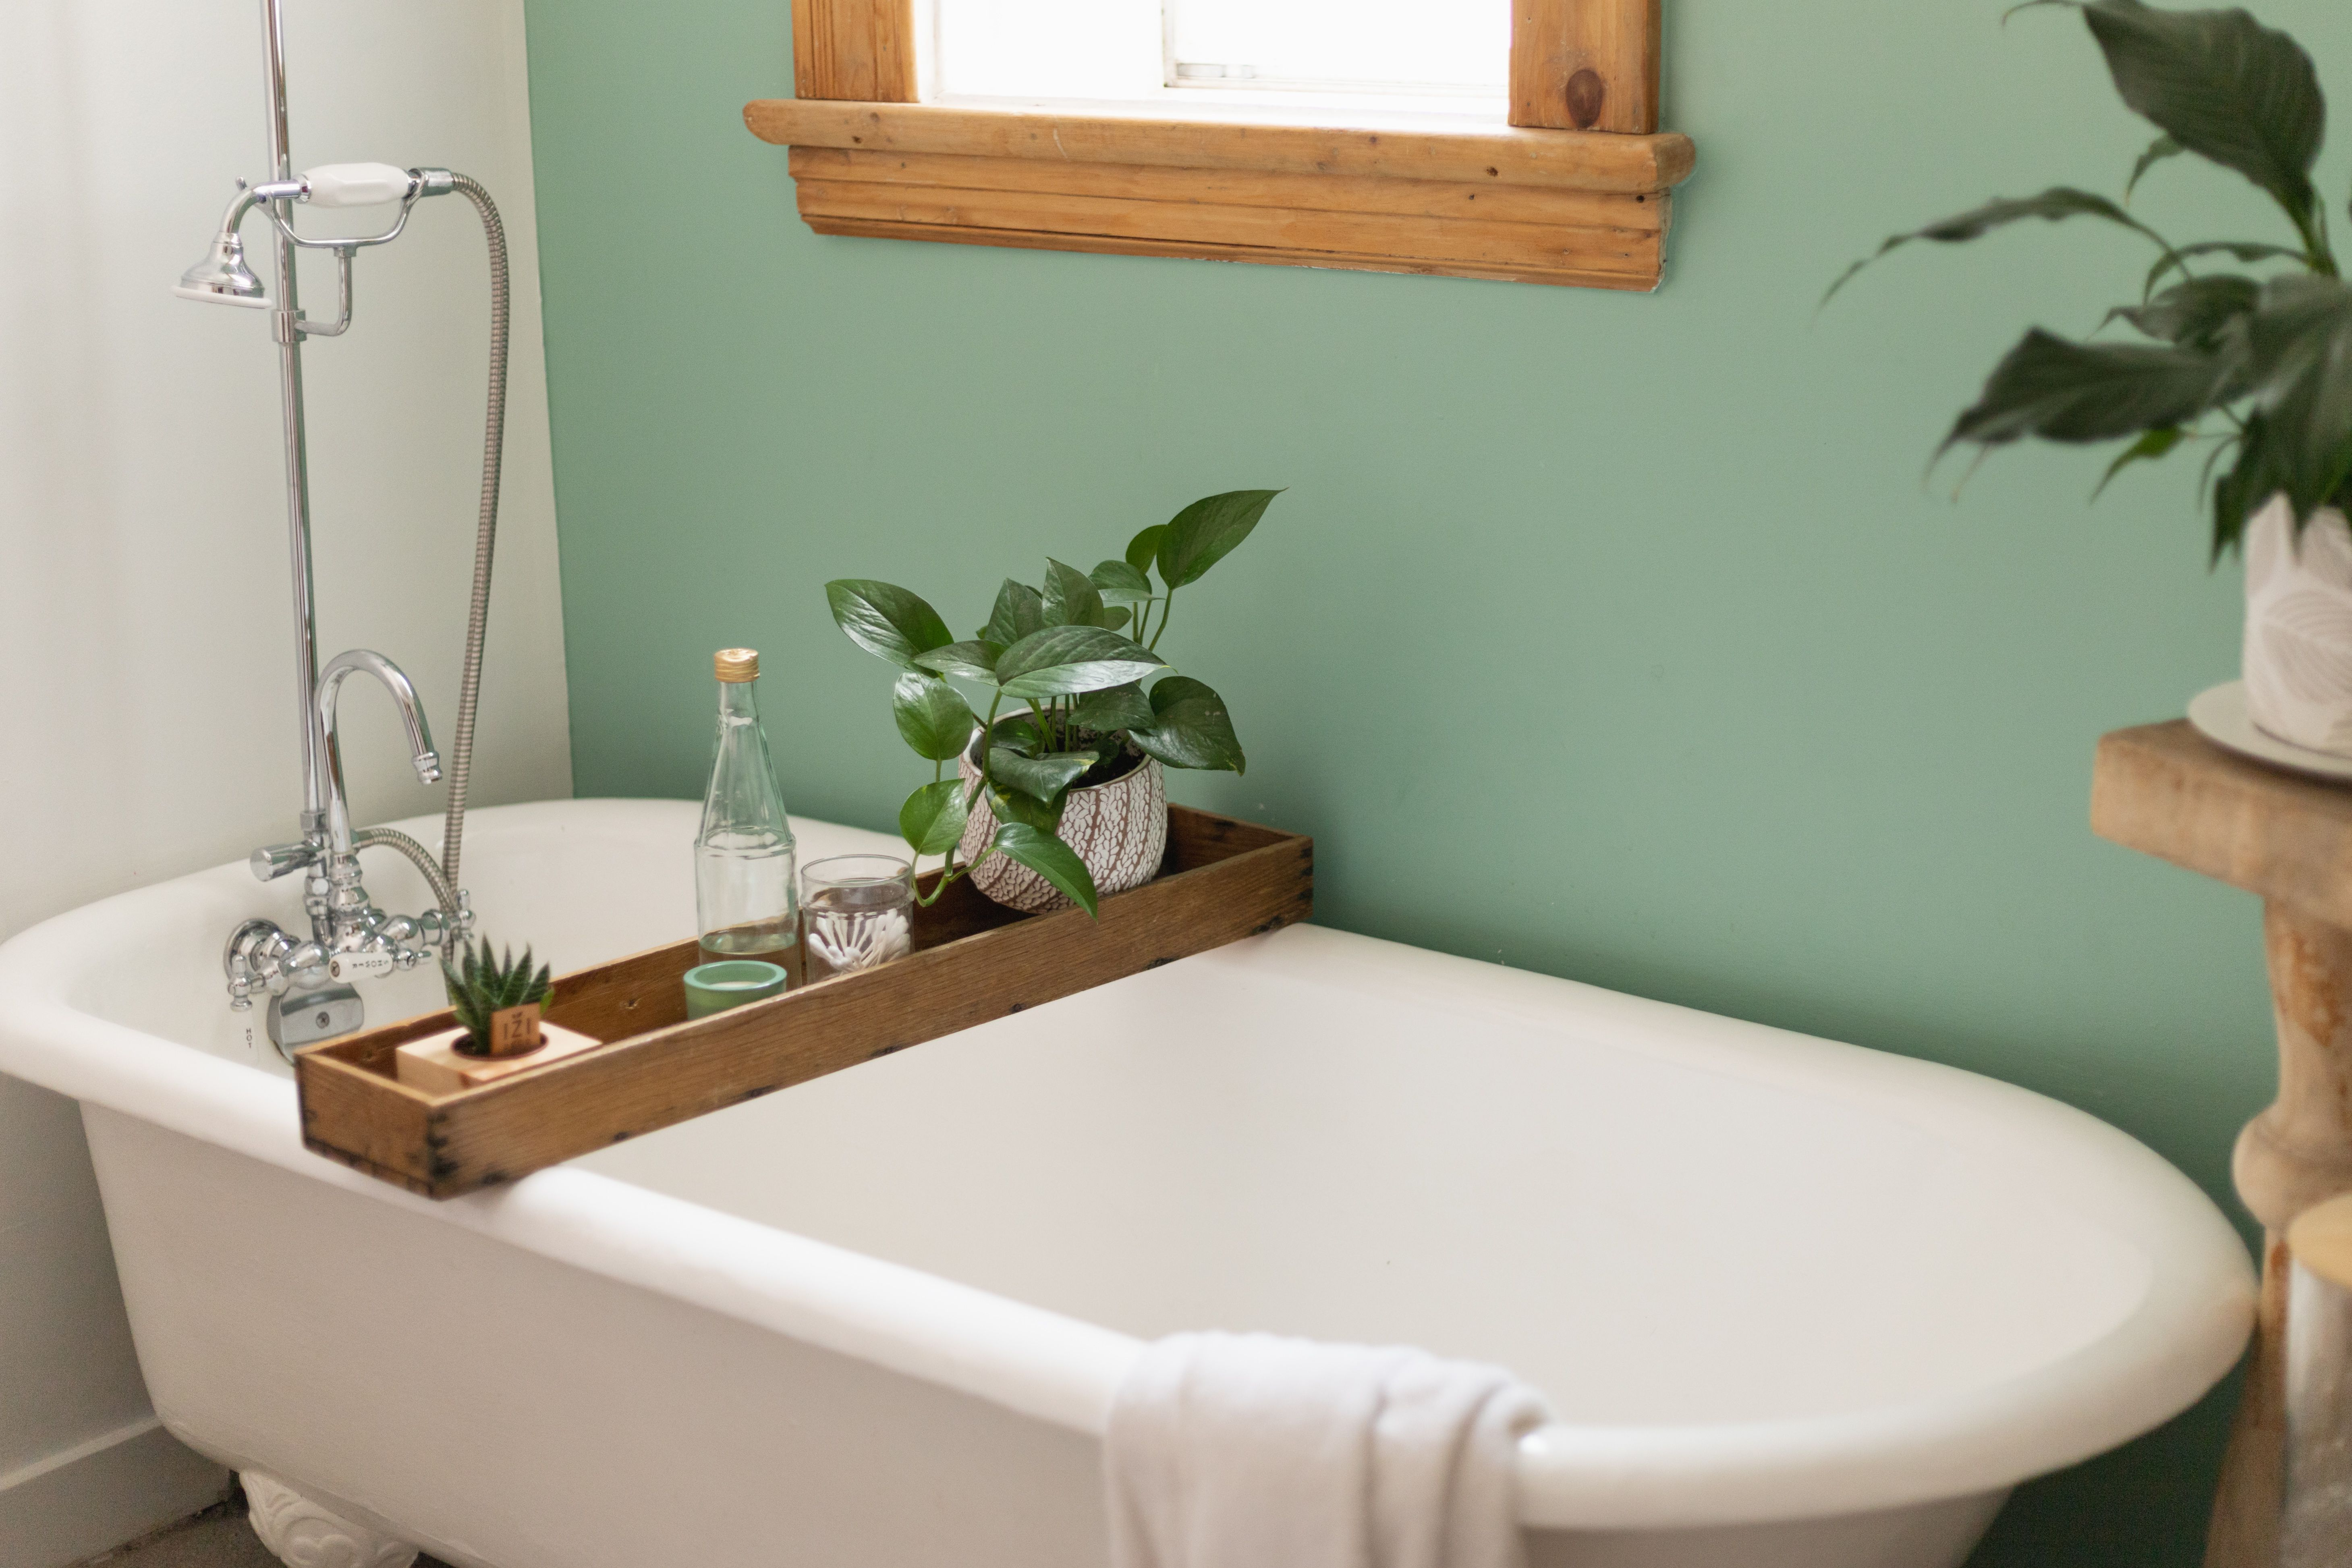 How To Clean A Reglazed Or Refinished Bathtub